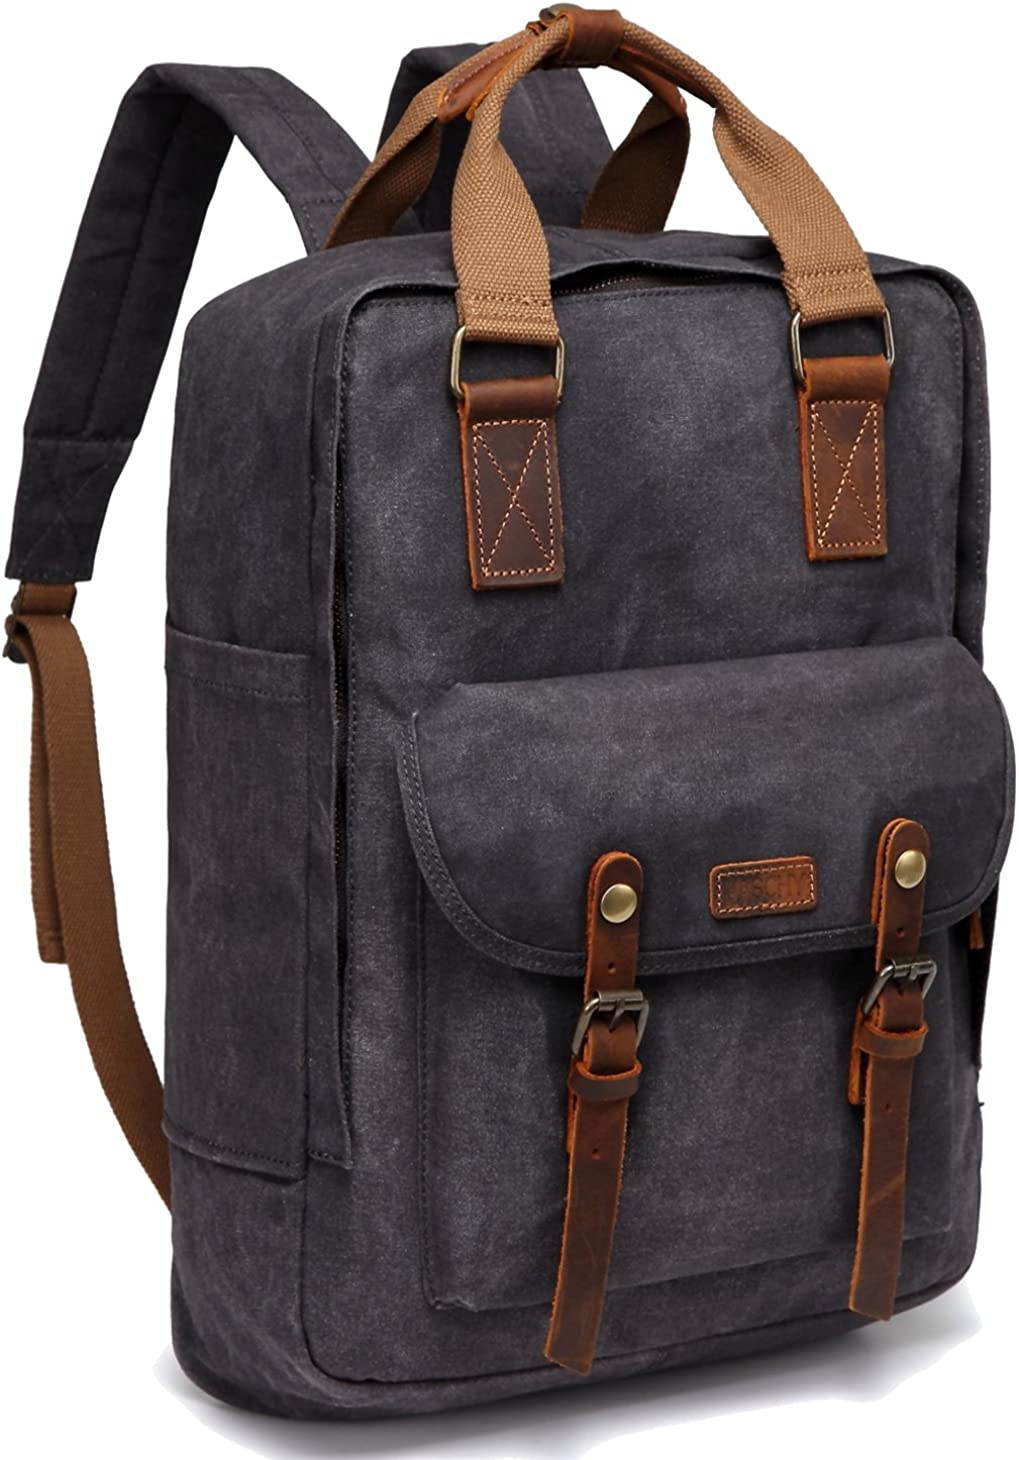 Canvas Laptop Backpack,VASCHY Vintage Waxed Canvas Anti-theft Backpack for Men Fits 15.6inch Laptop